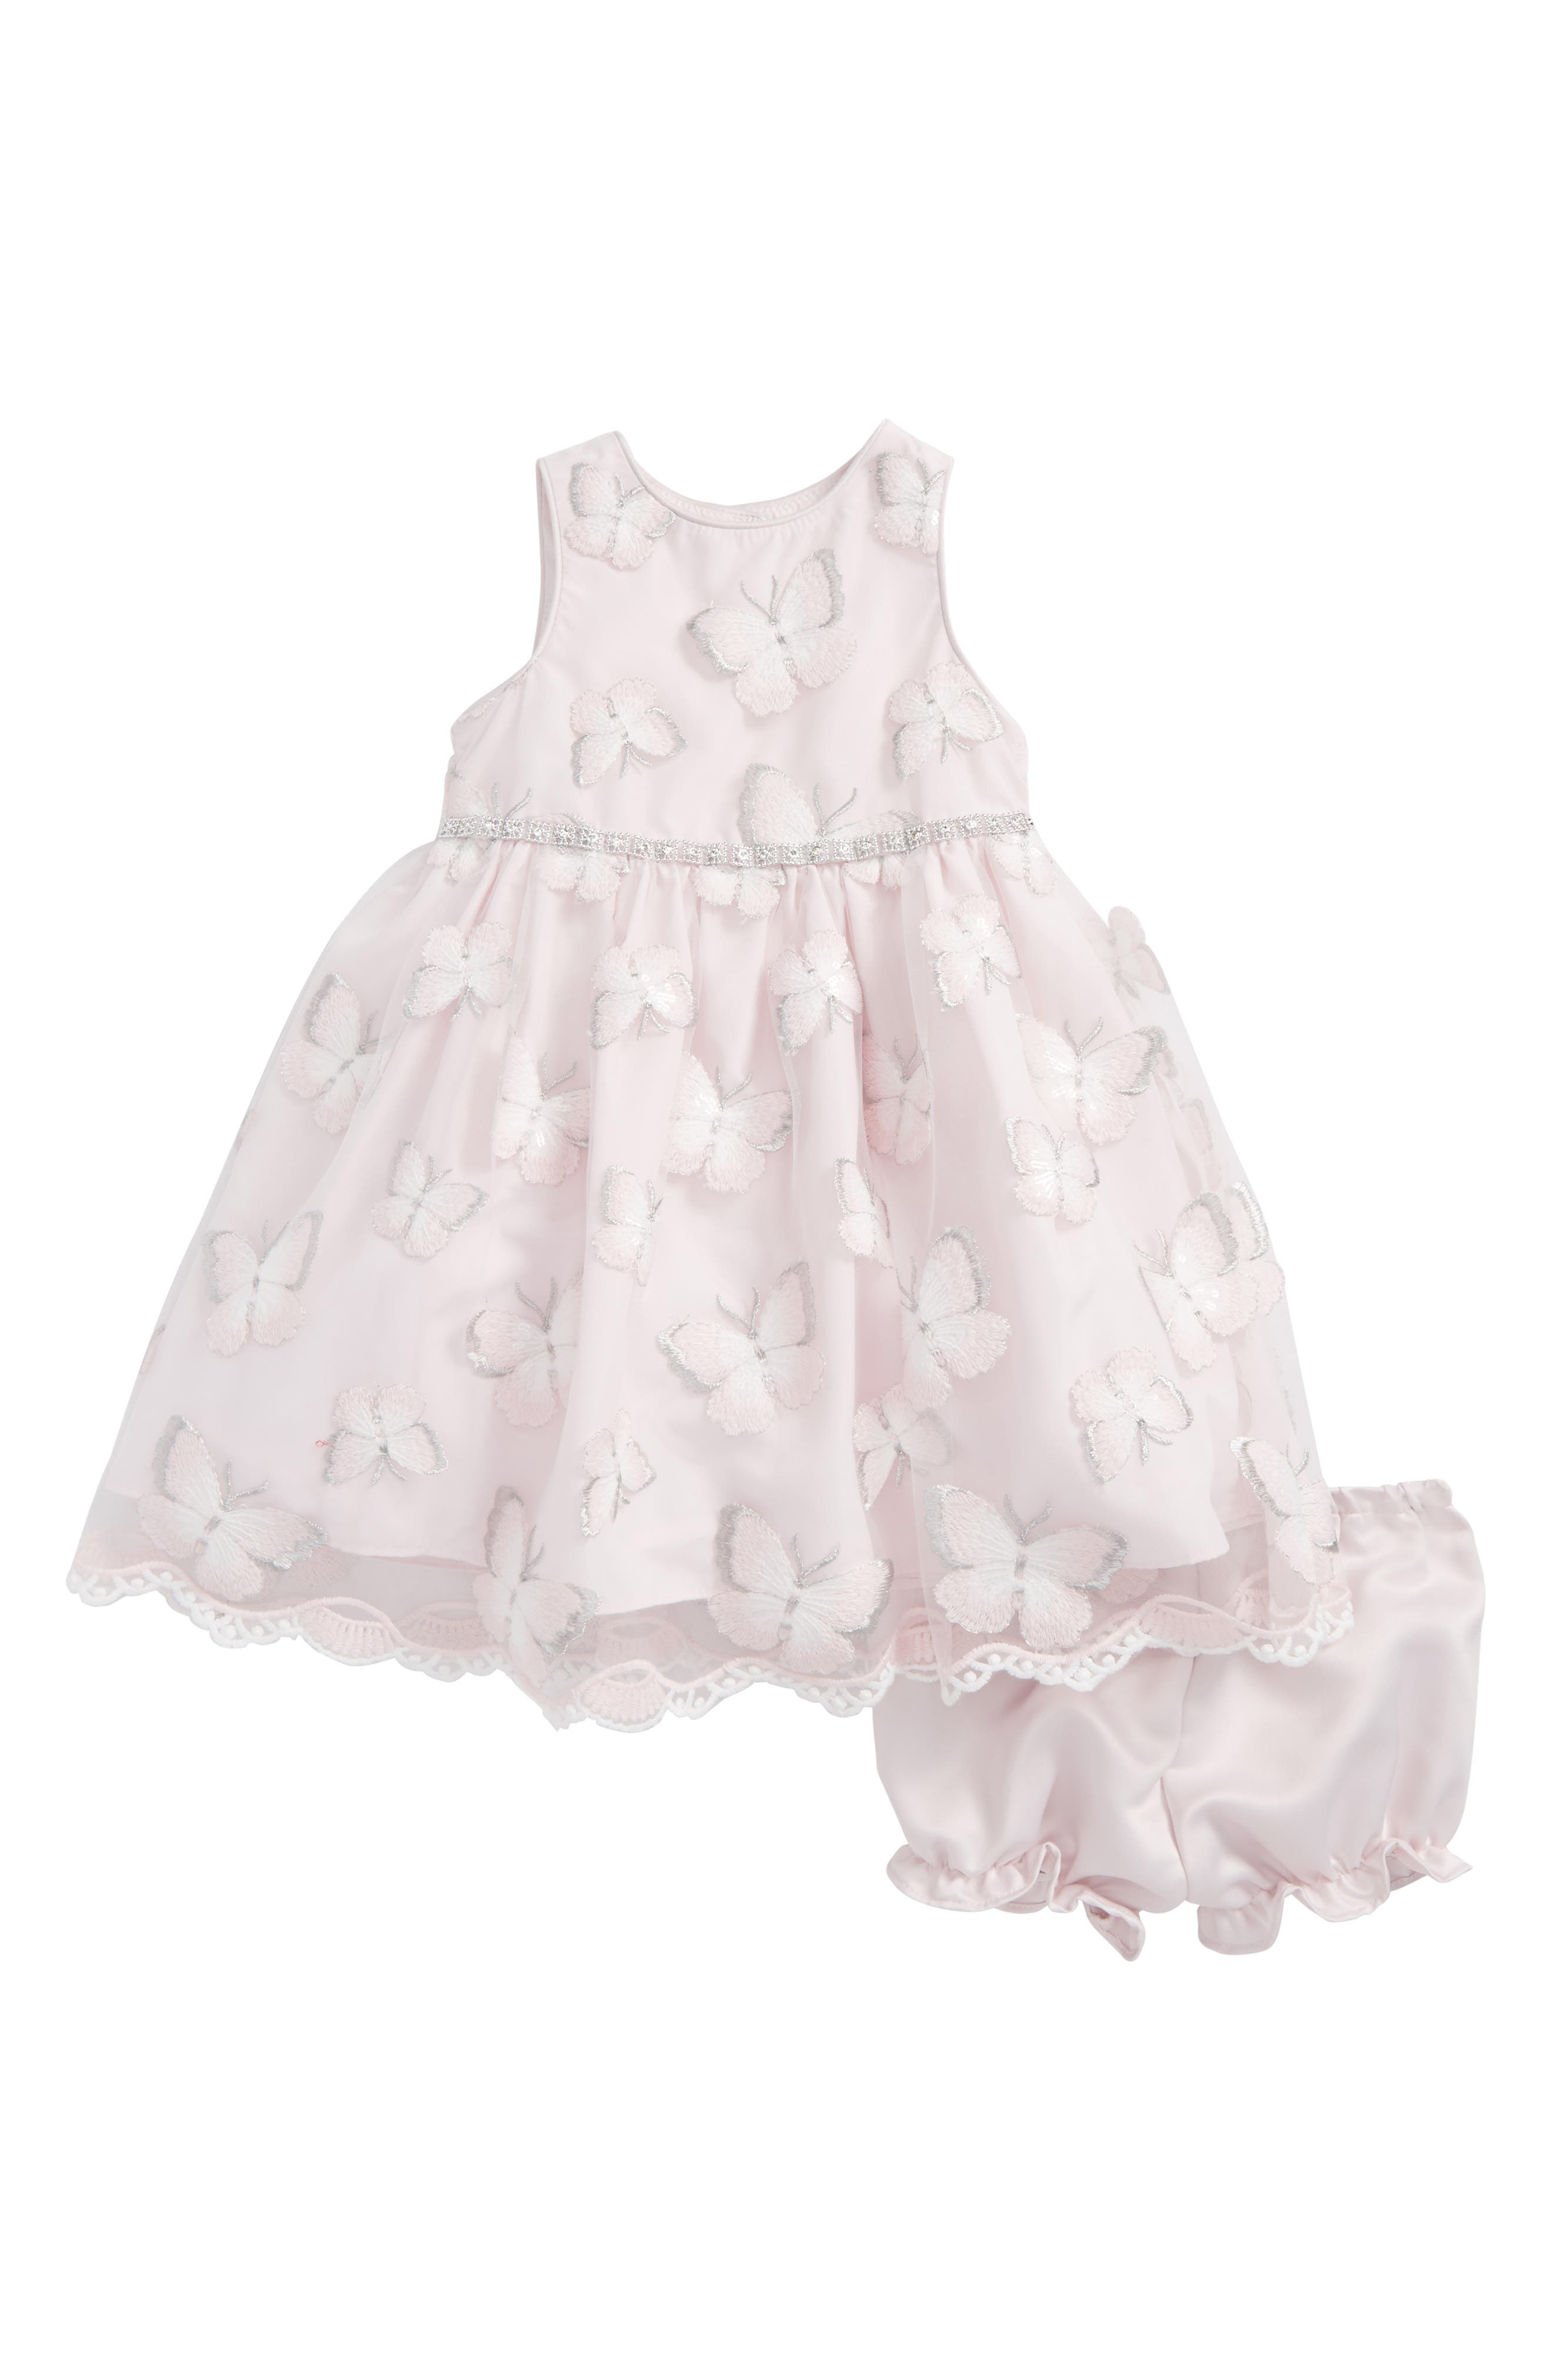 Alternate Image 1 Selected - Pippa & Julie Embroidered Butterfly Dress (Baby Girls)